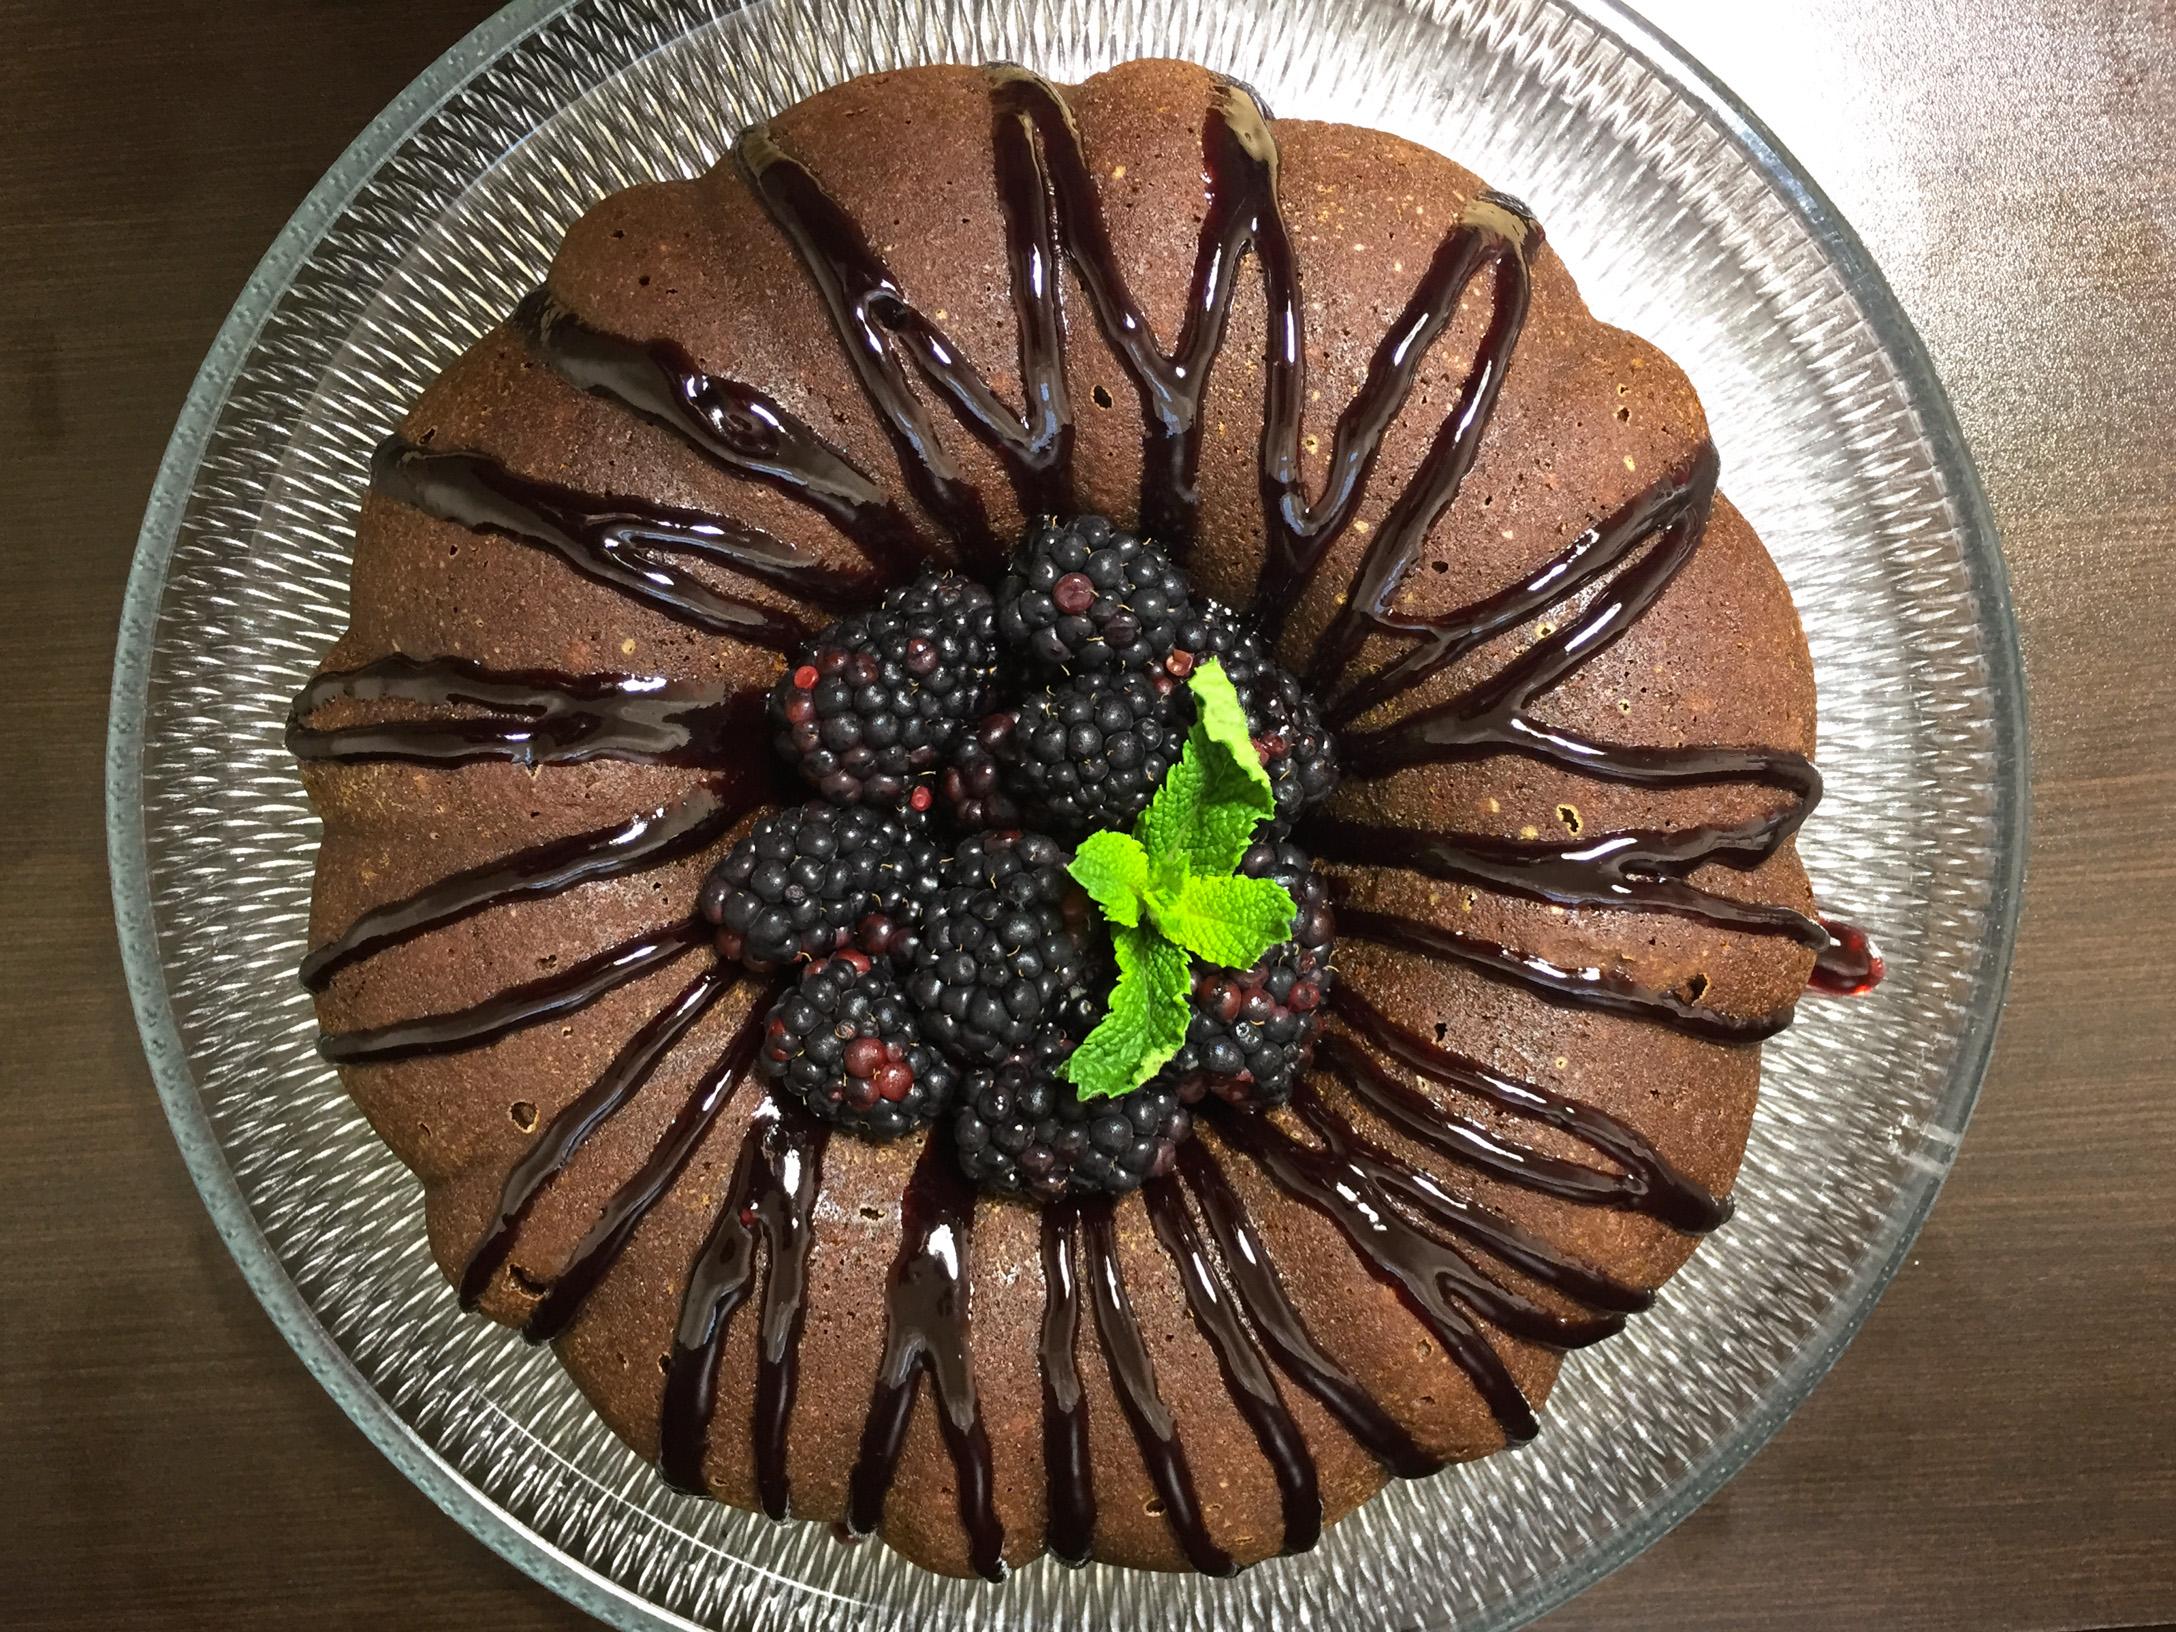 The Blacker the Berry Cake